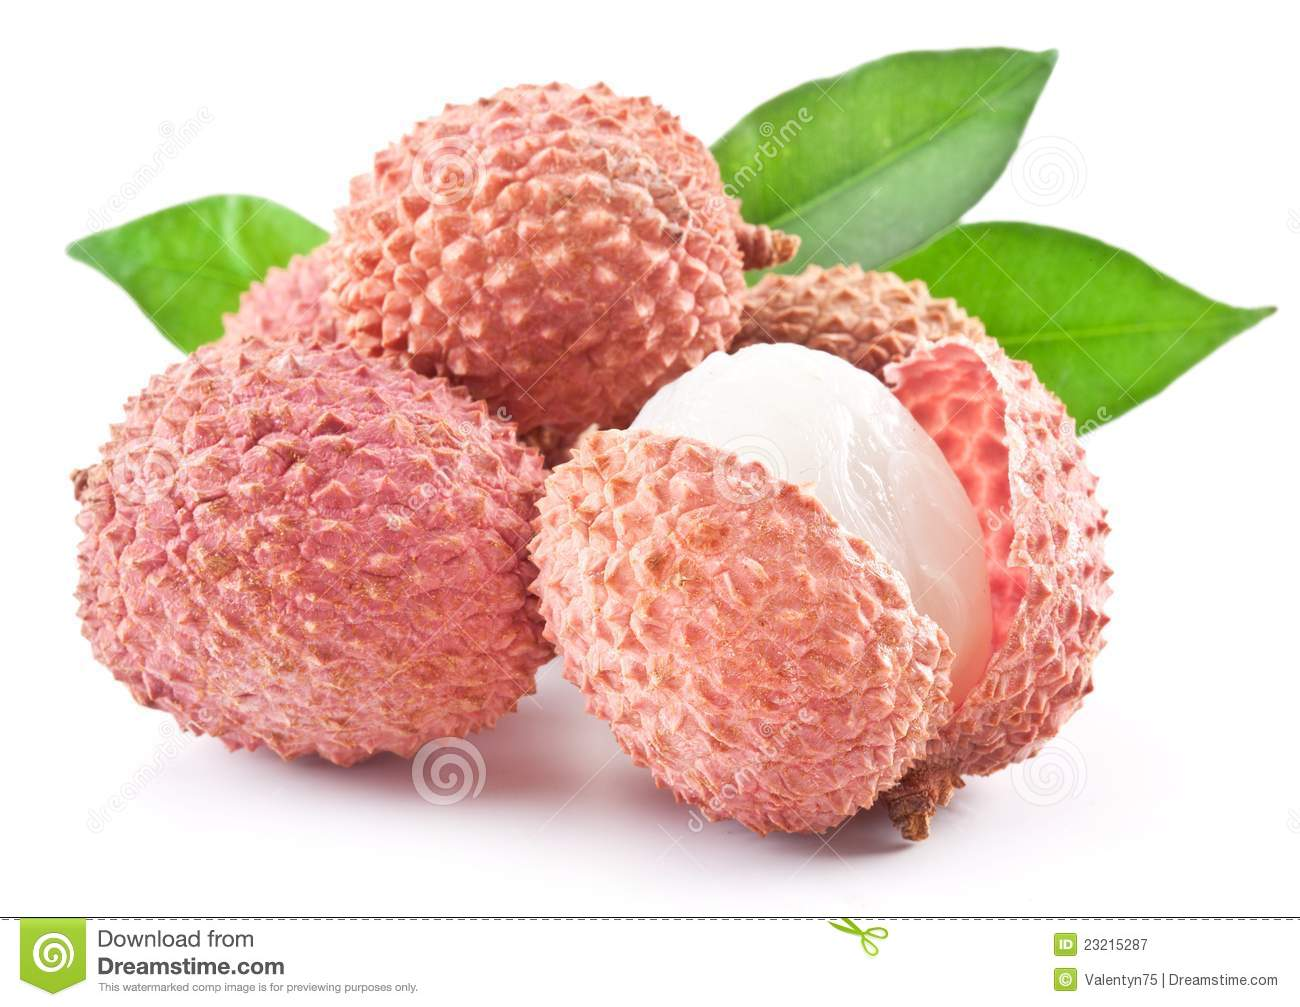 Lychee with leaves